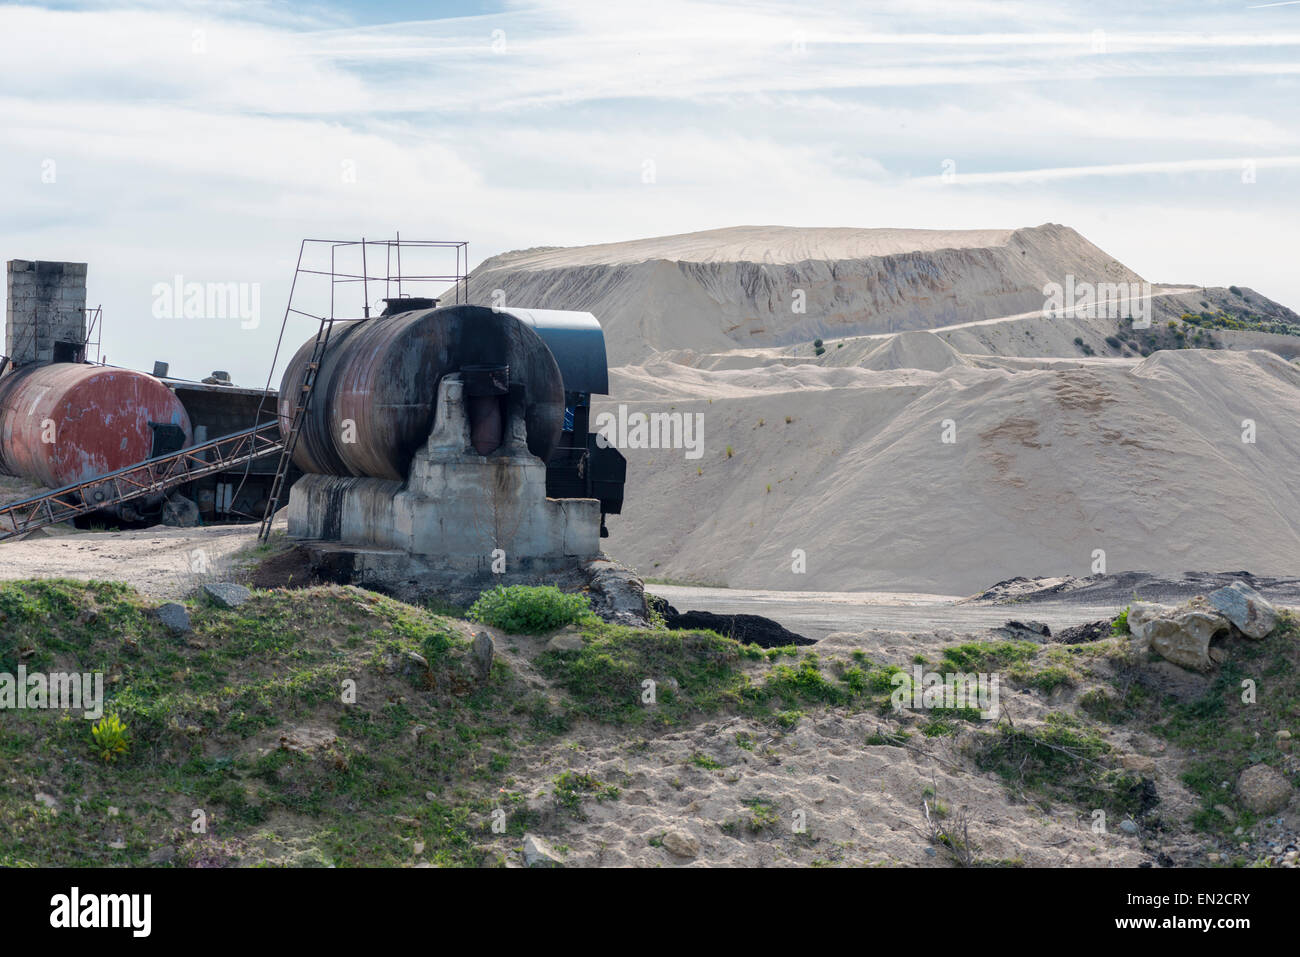 Tank and Gravel pit  view. Mining area. - Stock Image